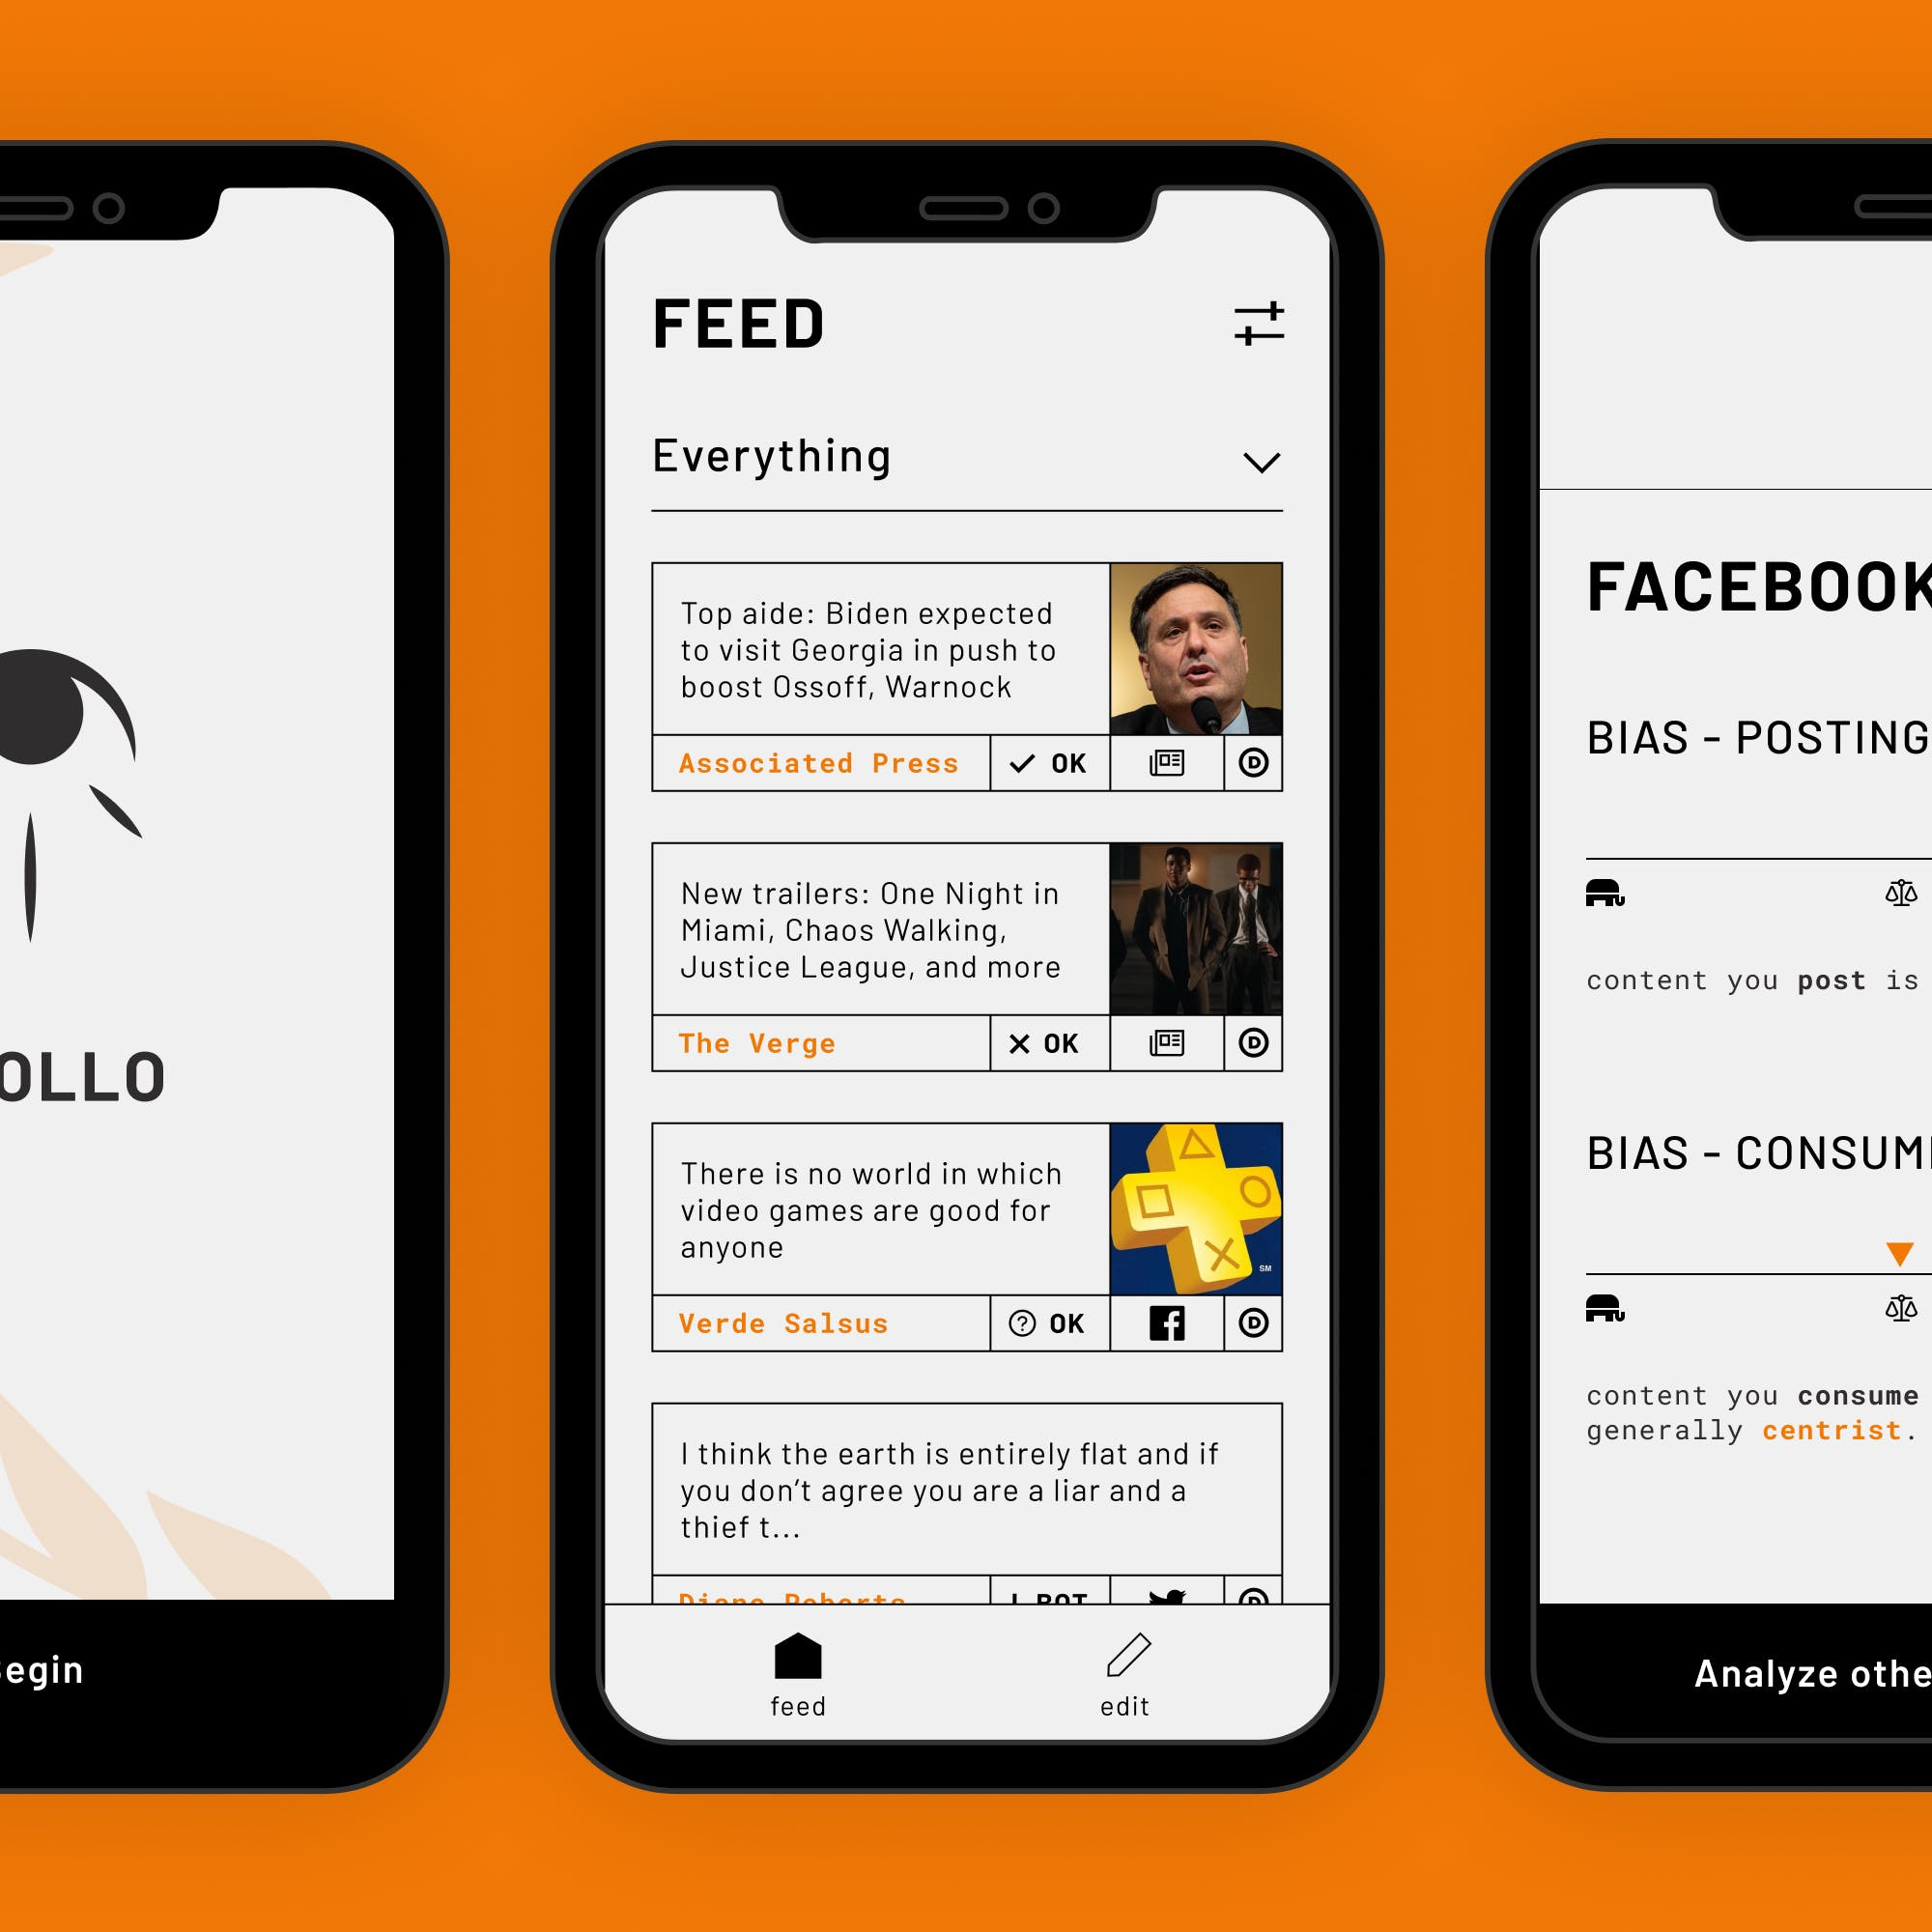 A thumbnail showing screens of apollo on an orange background